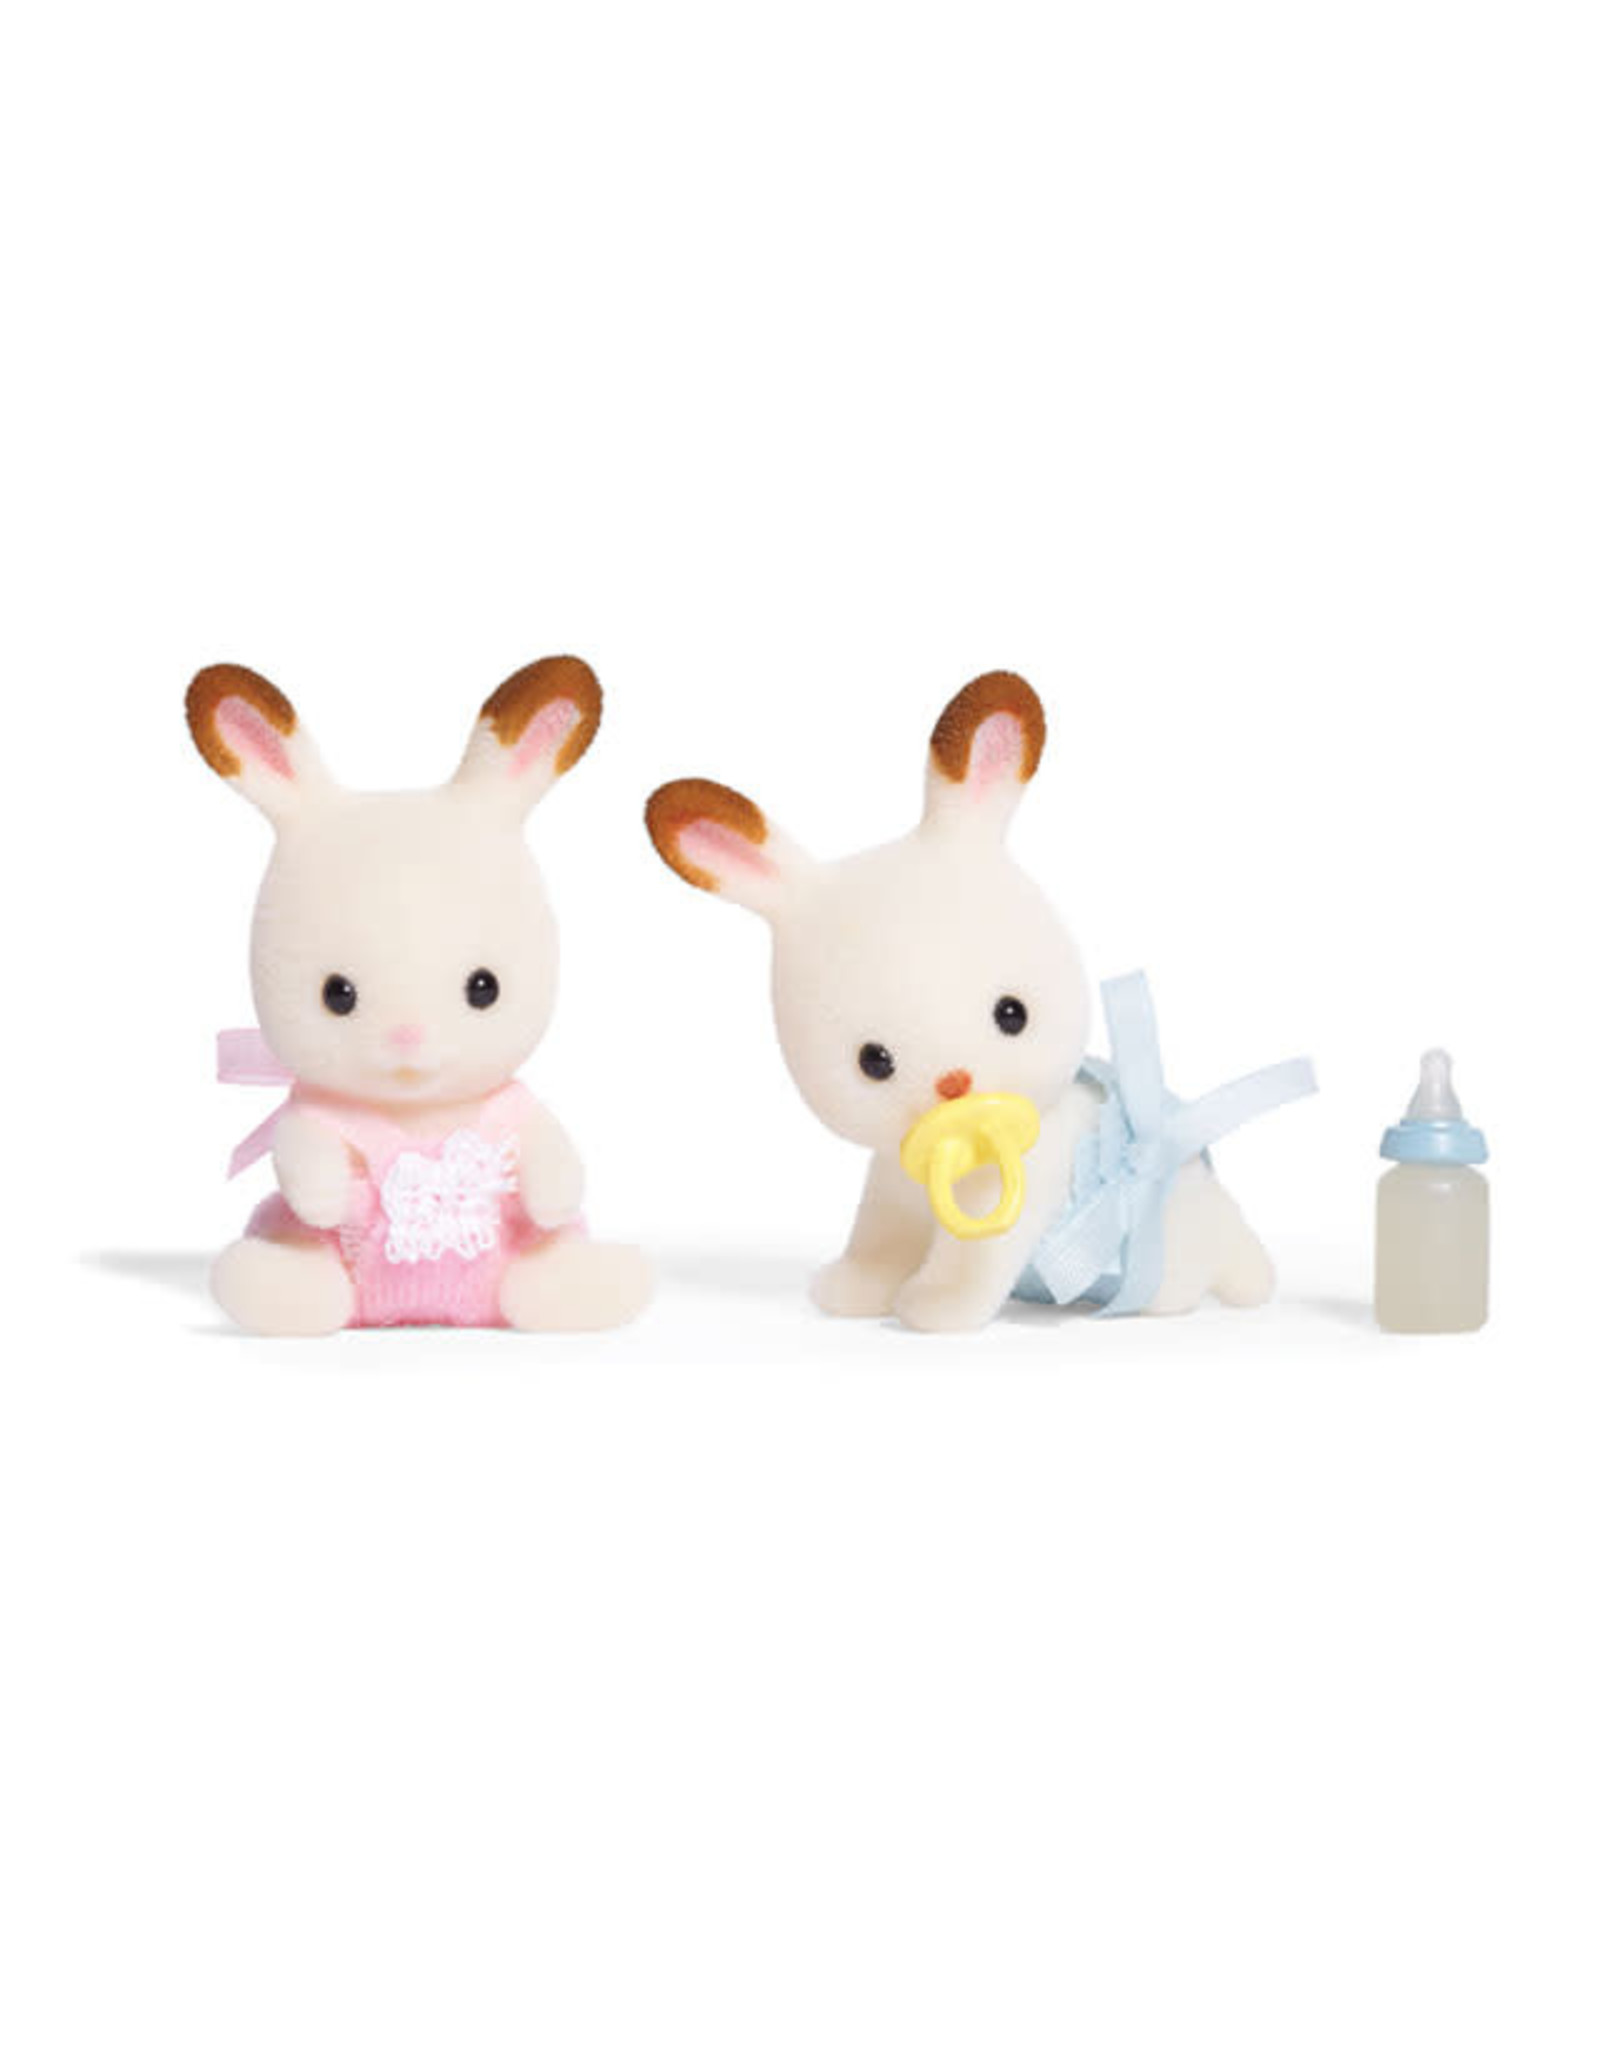 Calico Critters Calico Critters Hopscotch Rabbit Twins